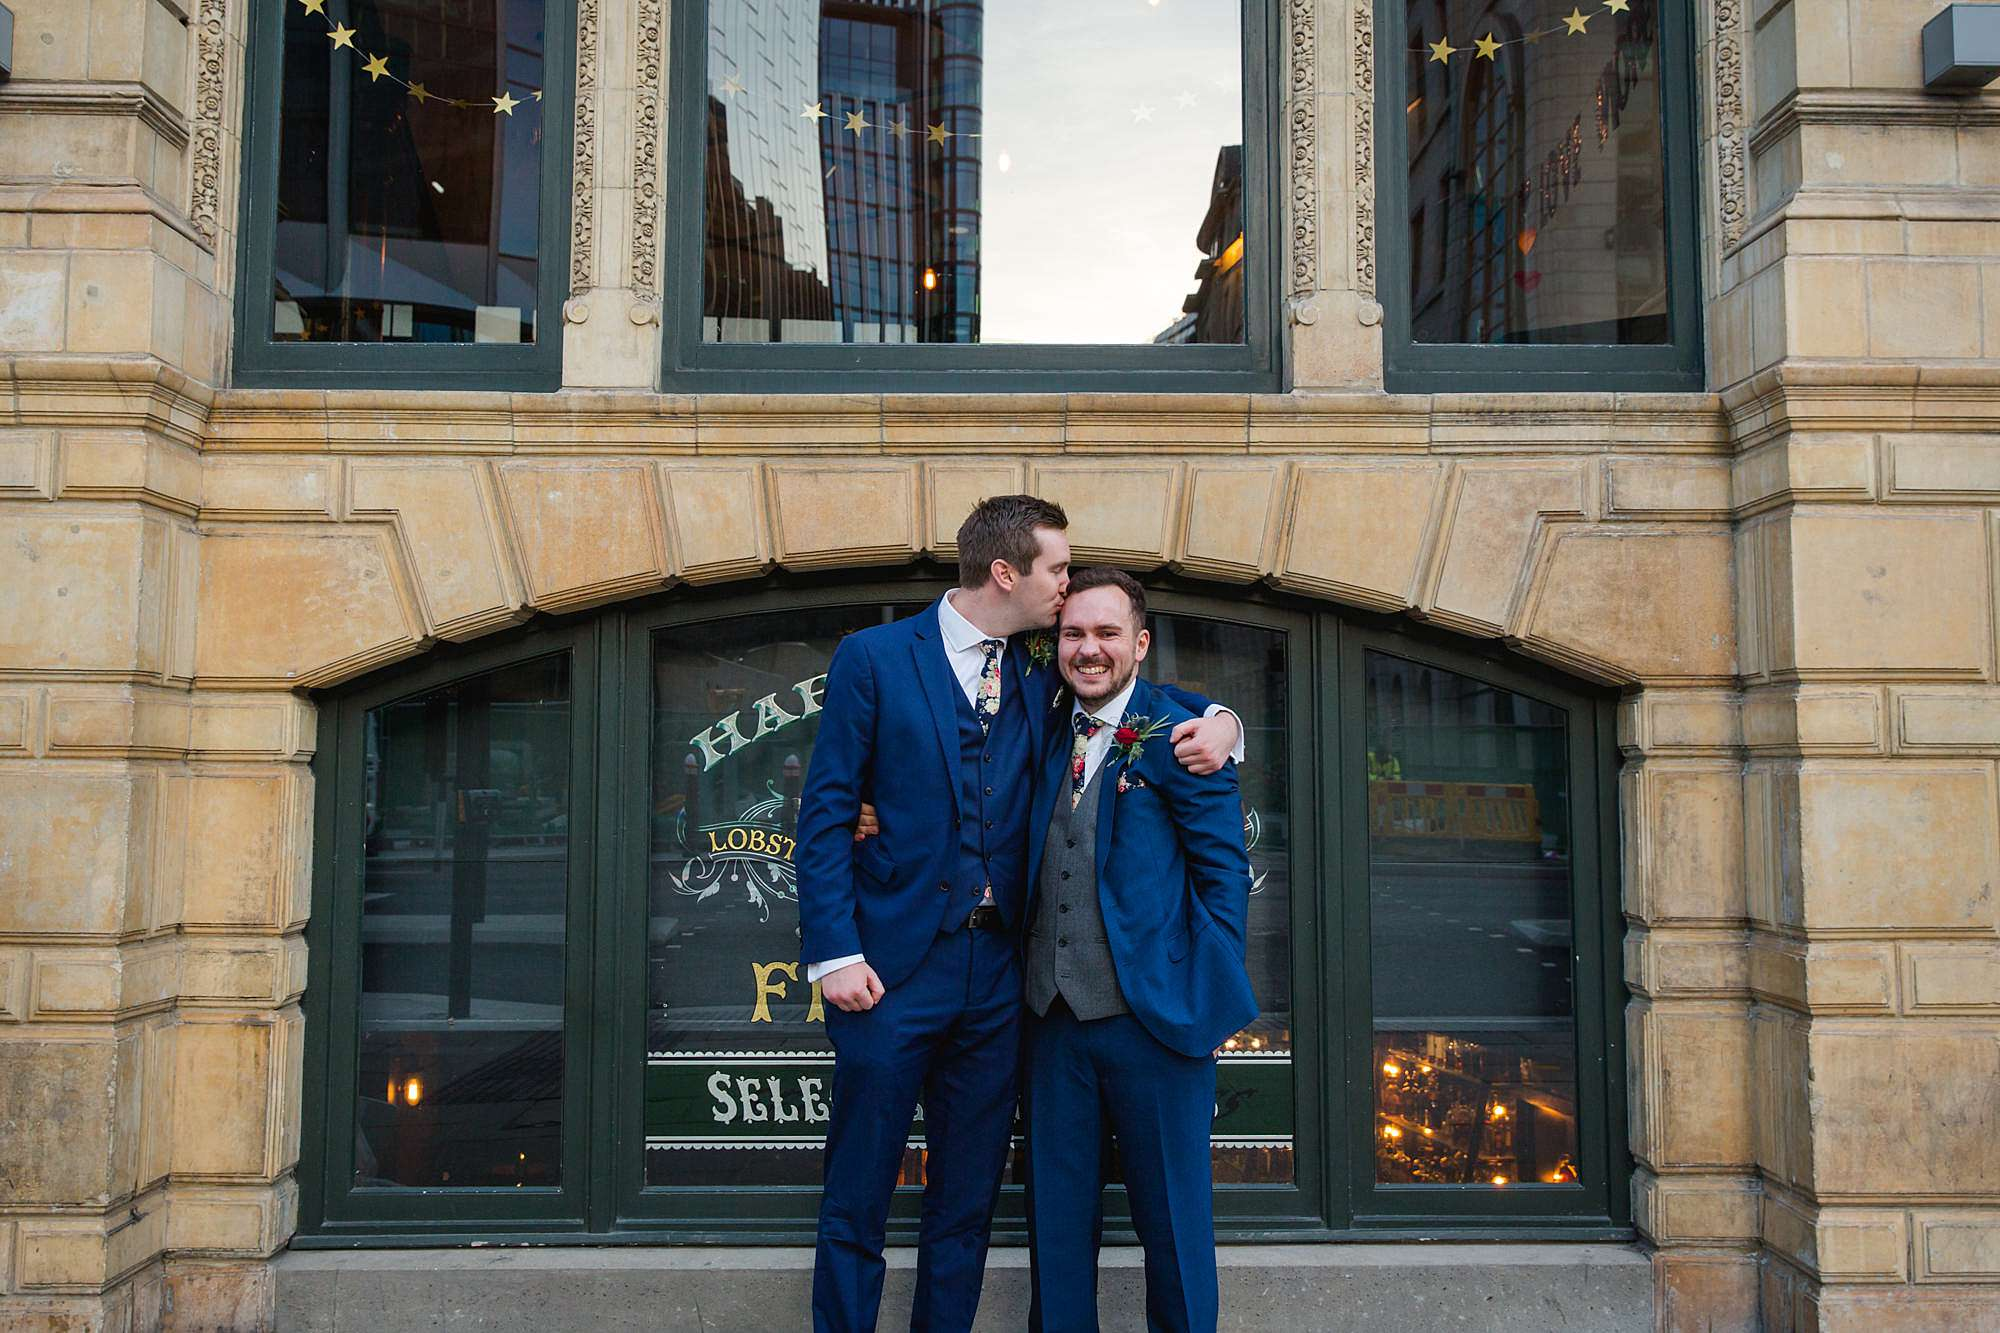 fun portrait of groom and his best man